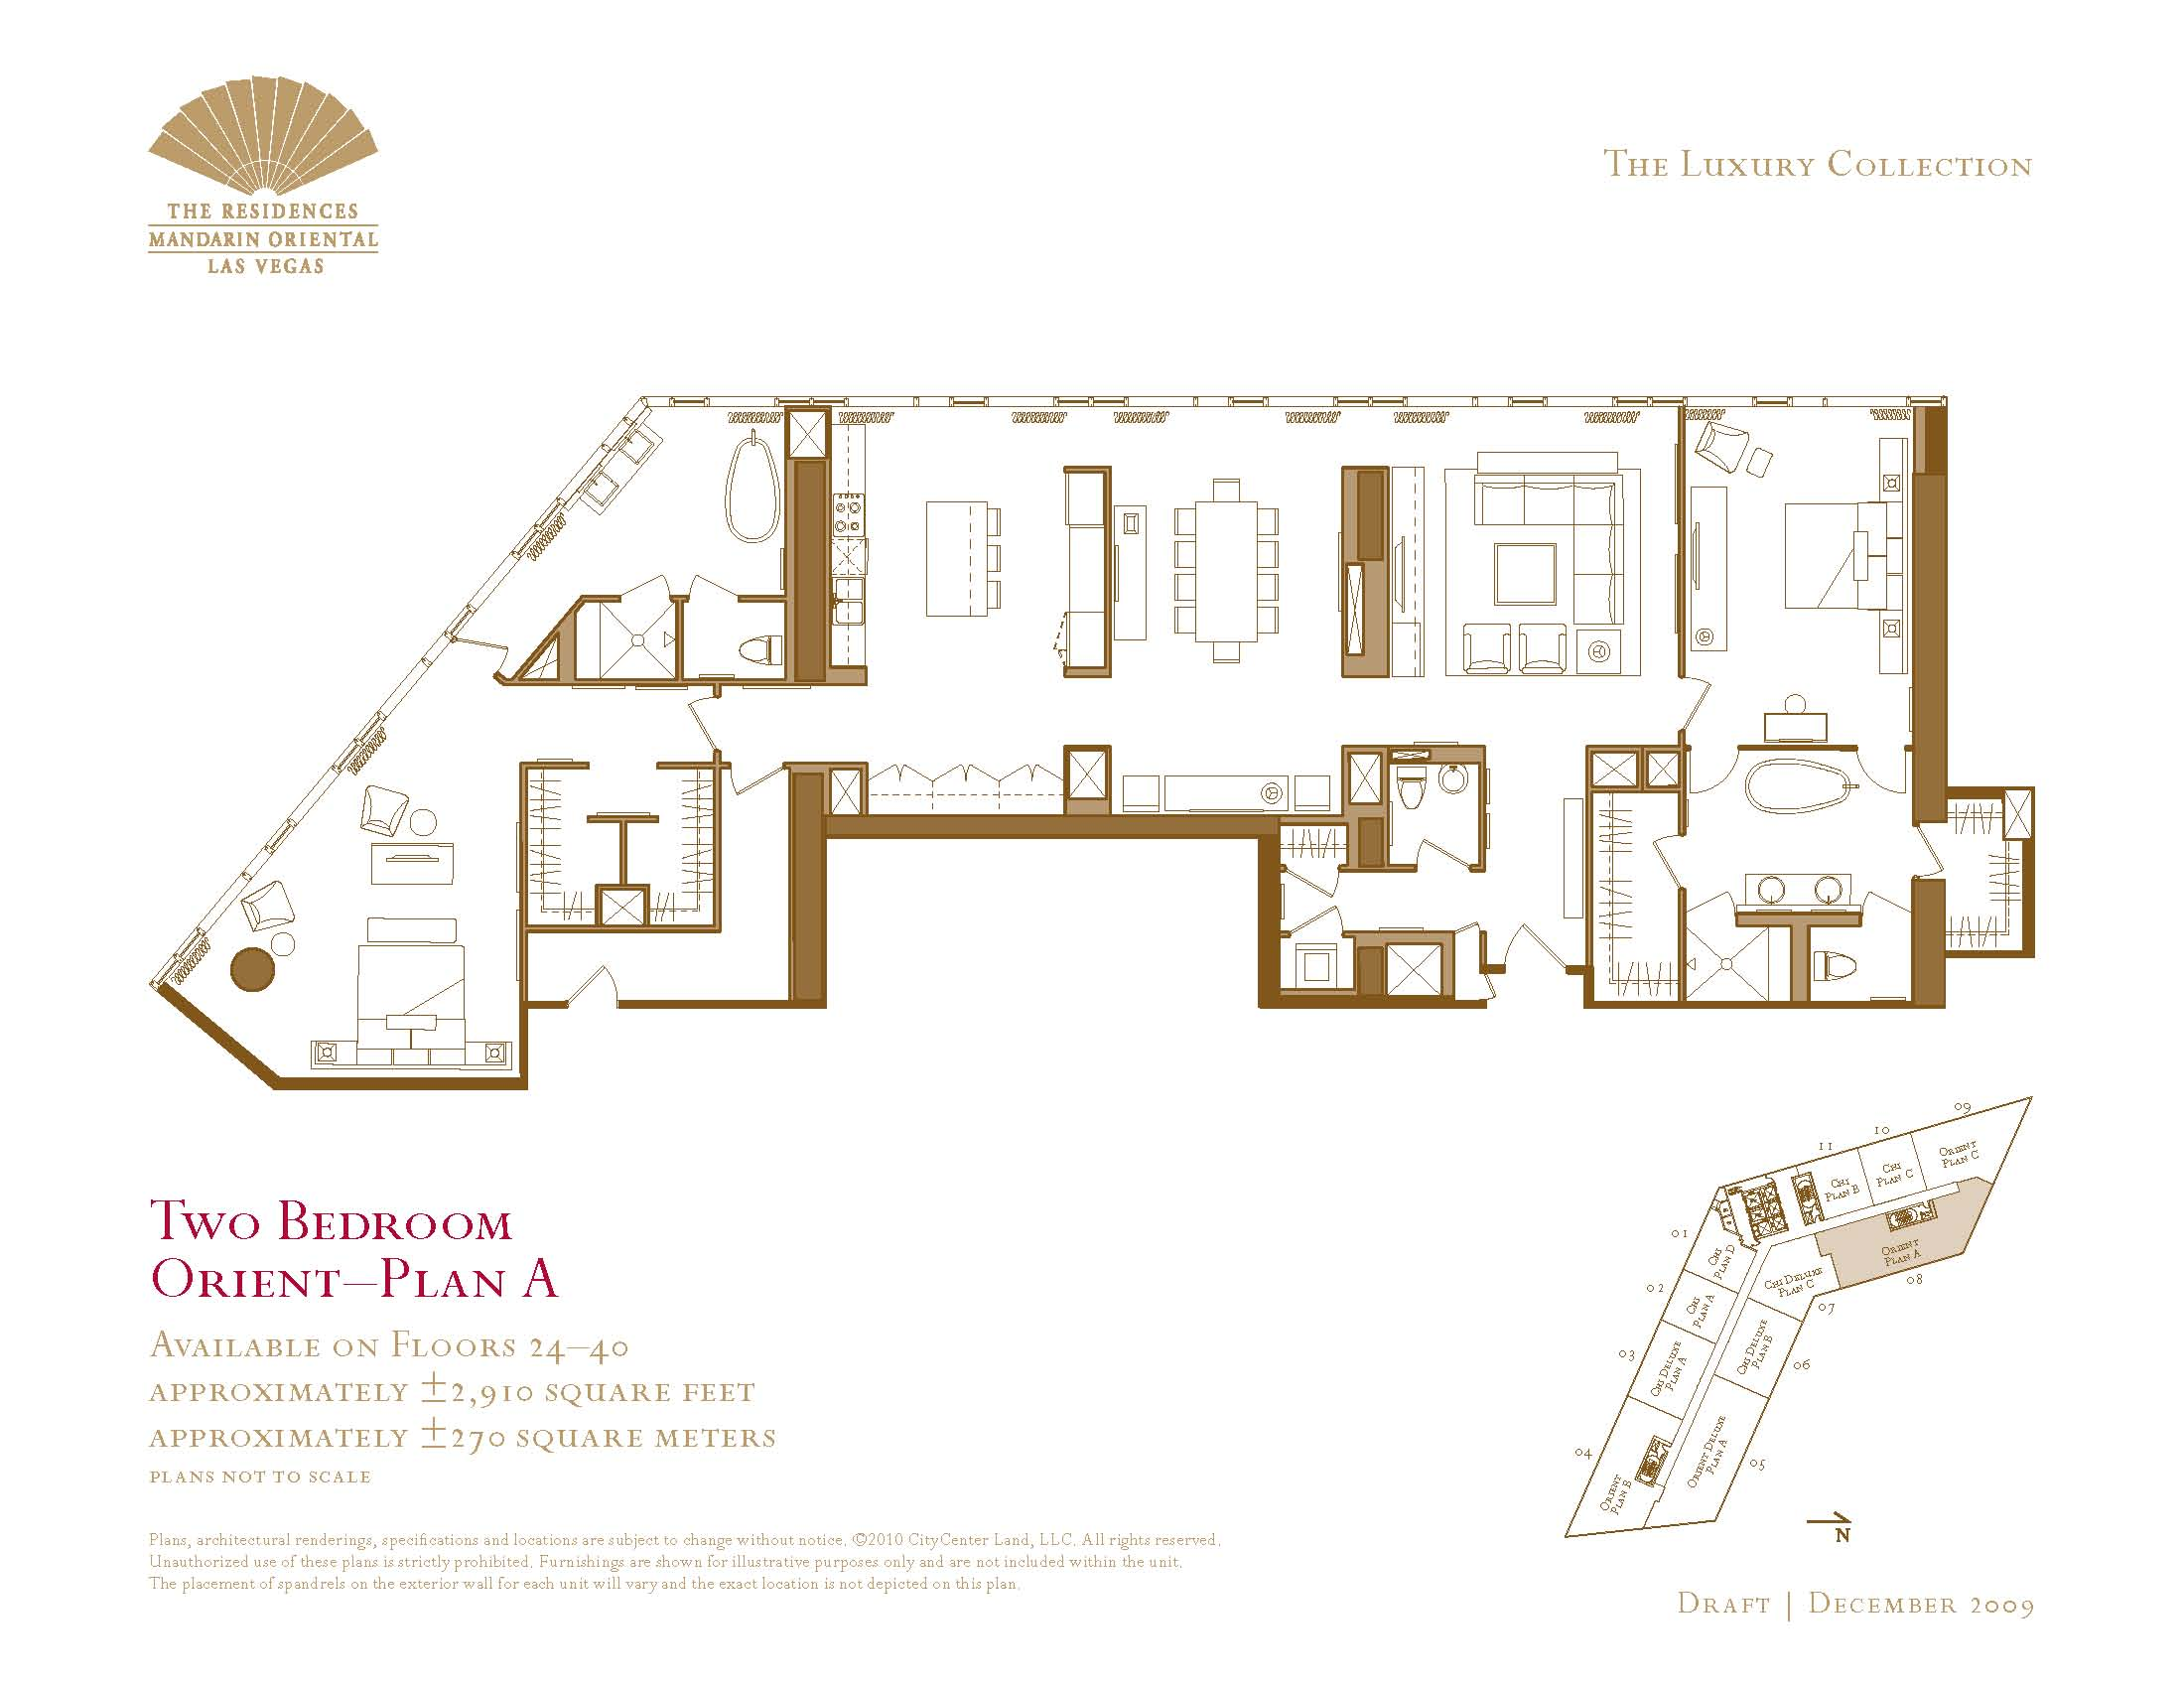 Two Bedroom Floor Plans The Mandarin Oriental Las Vegas The - Las vegas floor plans